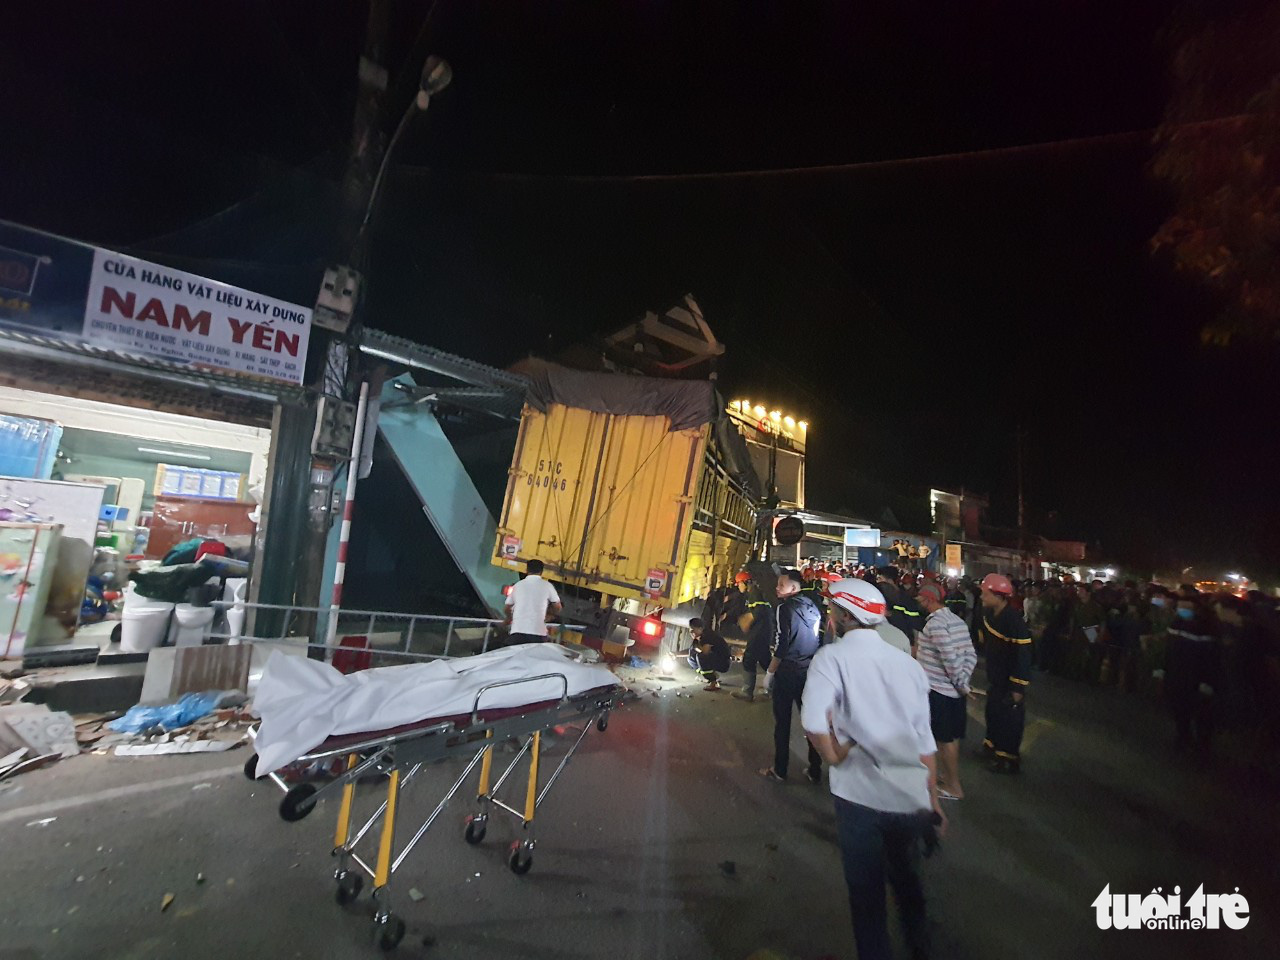 3 killed, 6 injured as truck crashes into car, motorbikes, houses in Vietnam